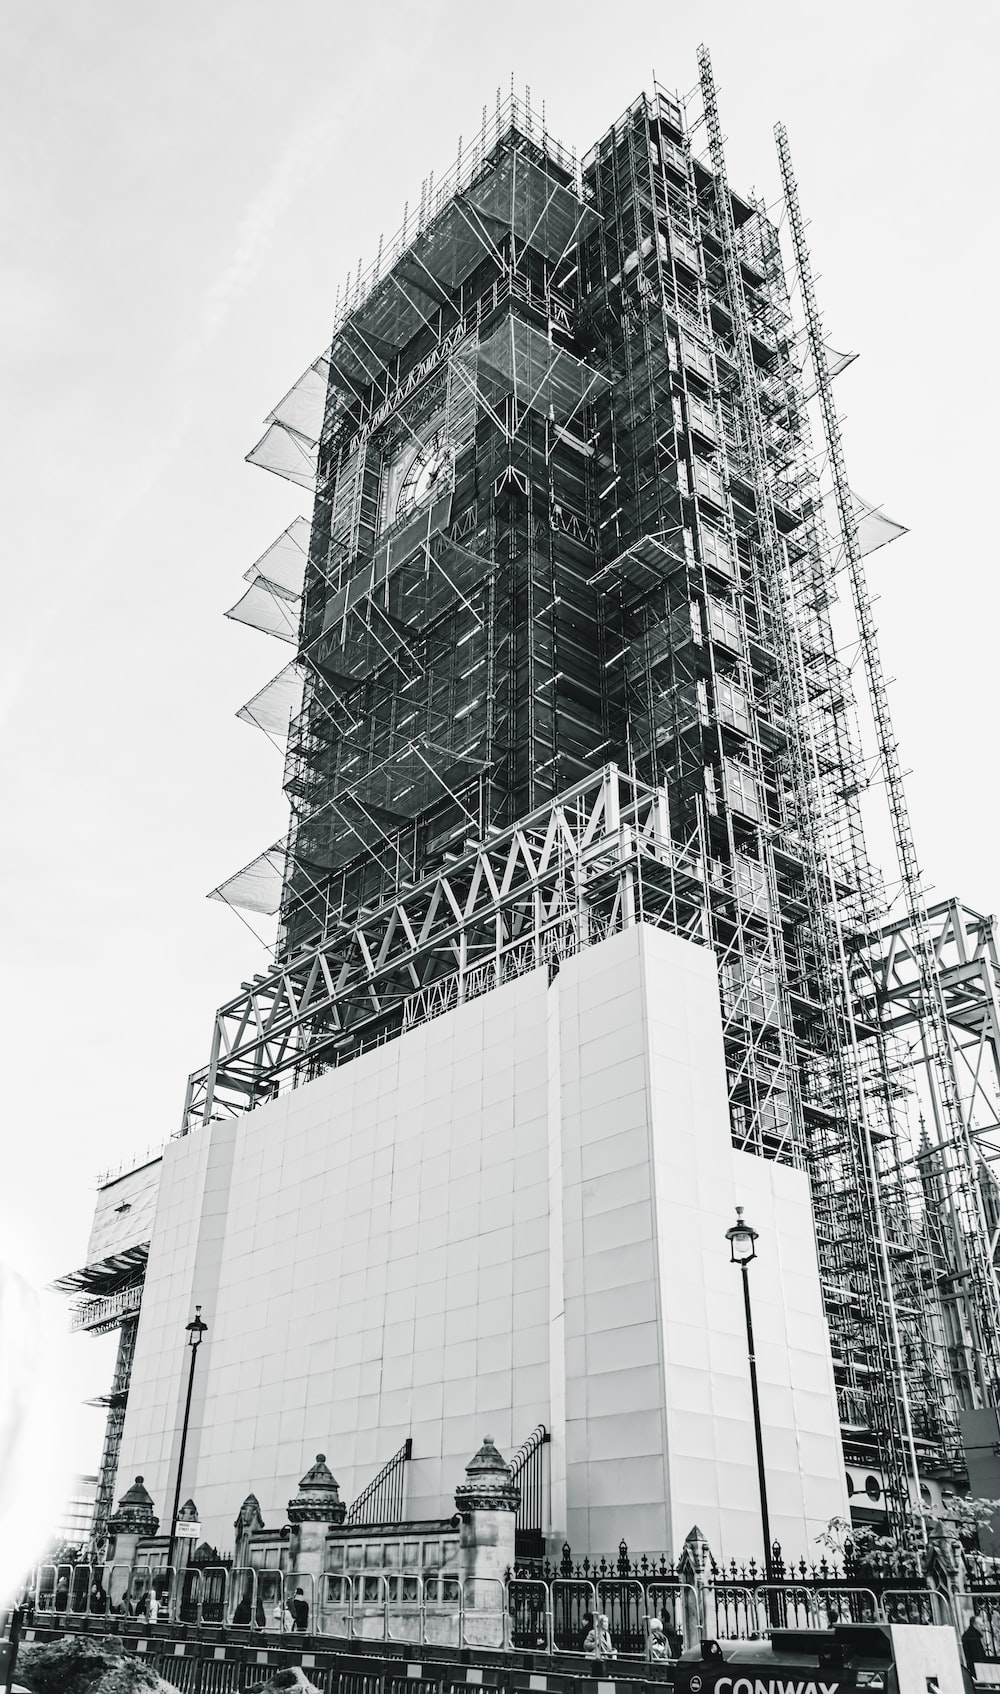 low-angle grayscale photography of an unfinished high-rise building